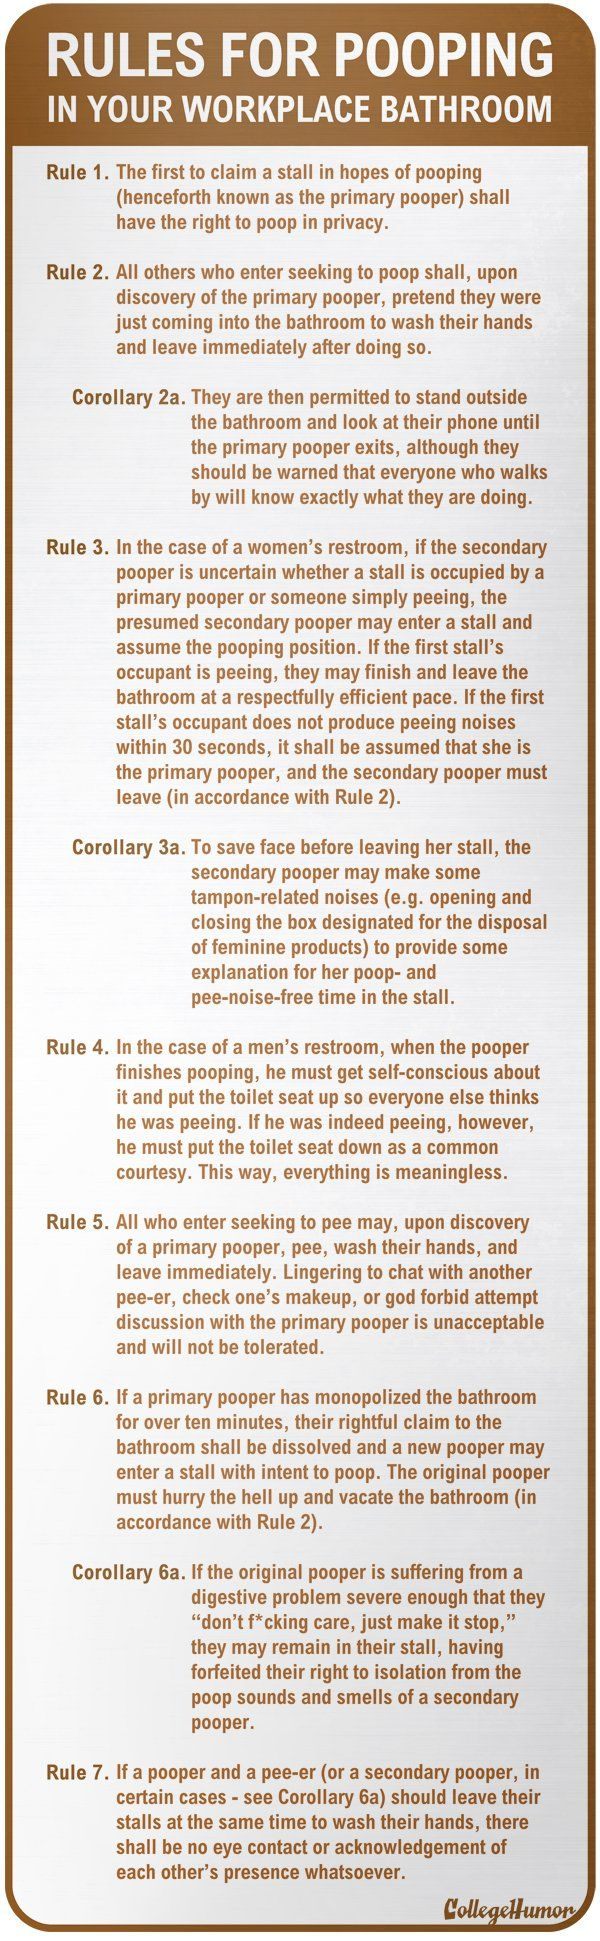 Official Rules For Pooping In Your Workplace Bathroom